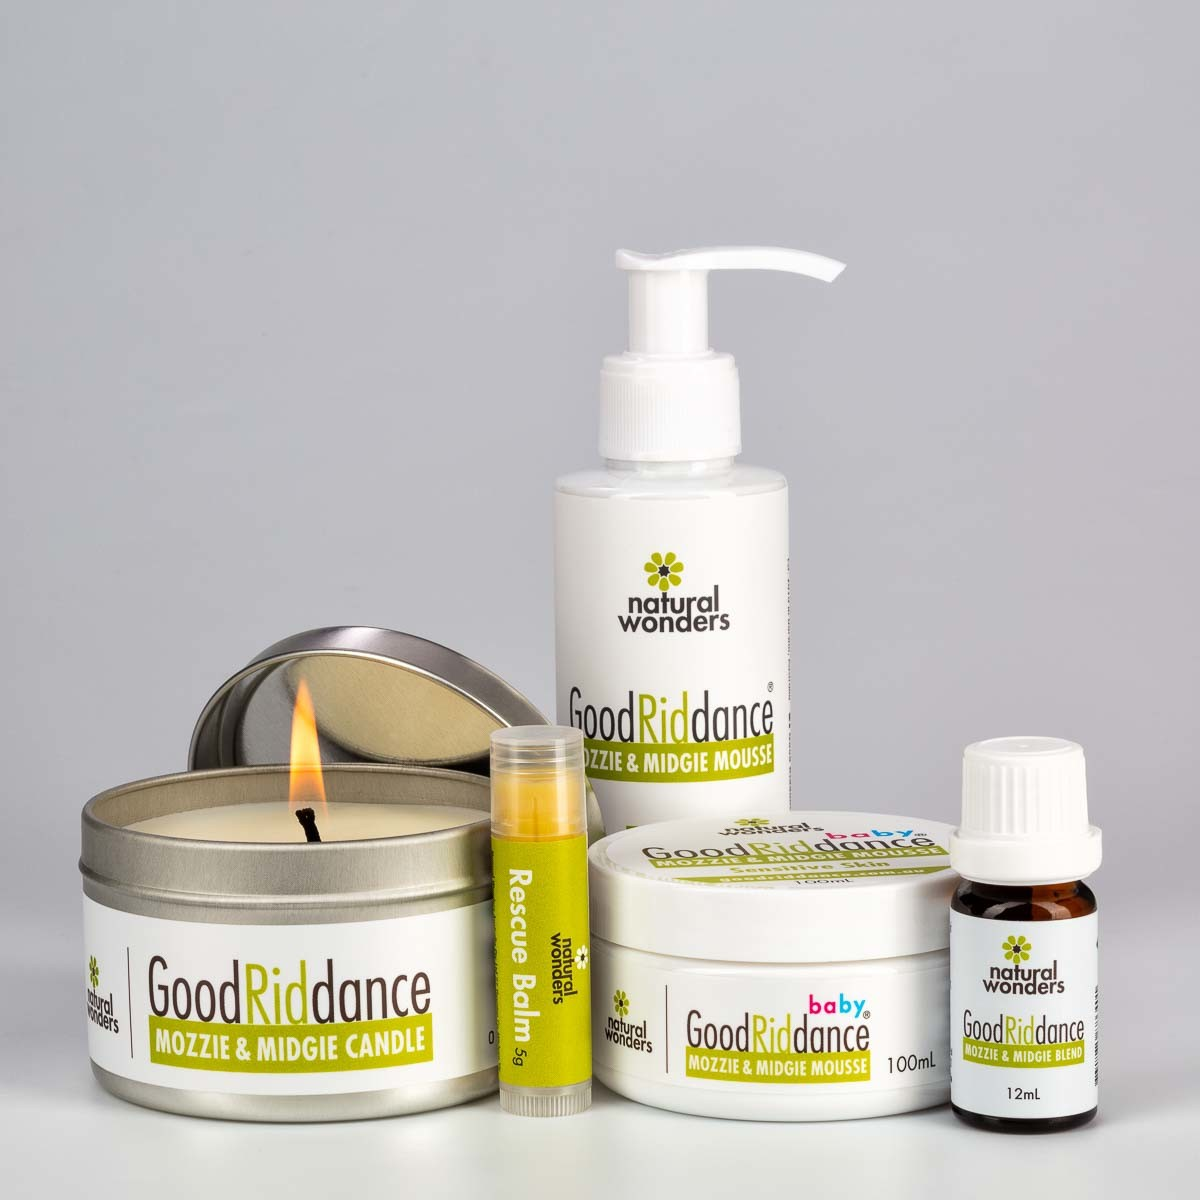 Mosquito repellent products_Nature Wonders Freedom Outdoor Pack Closed together